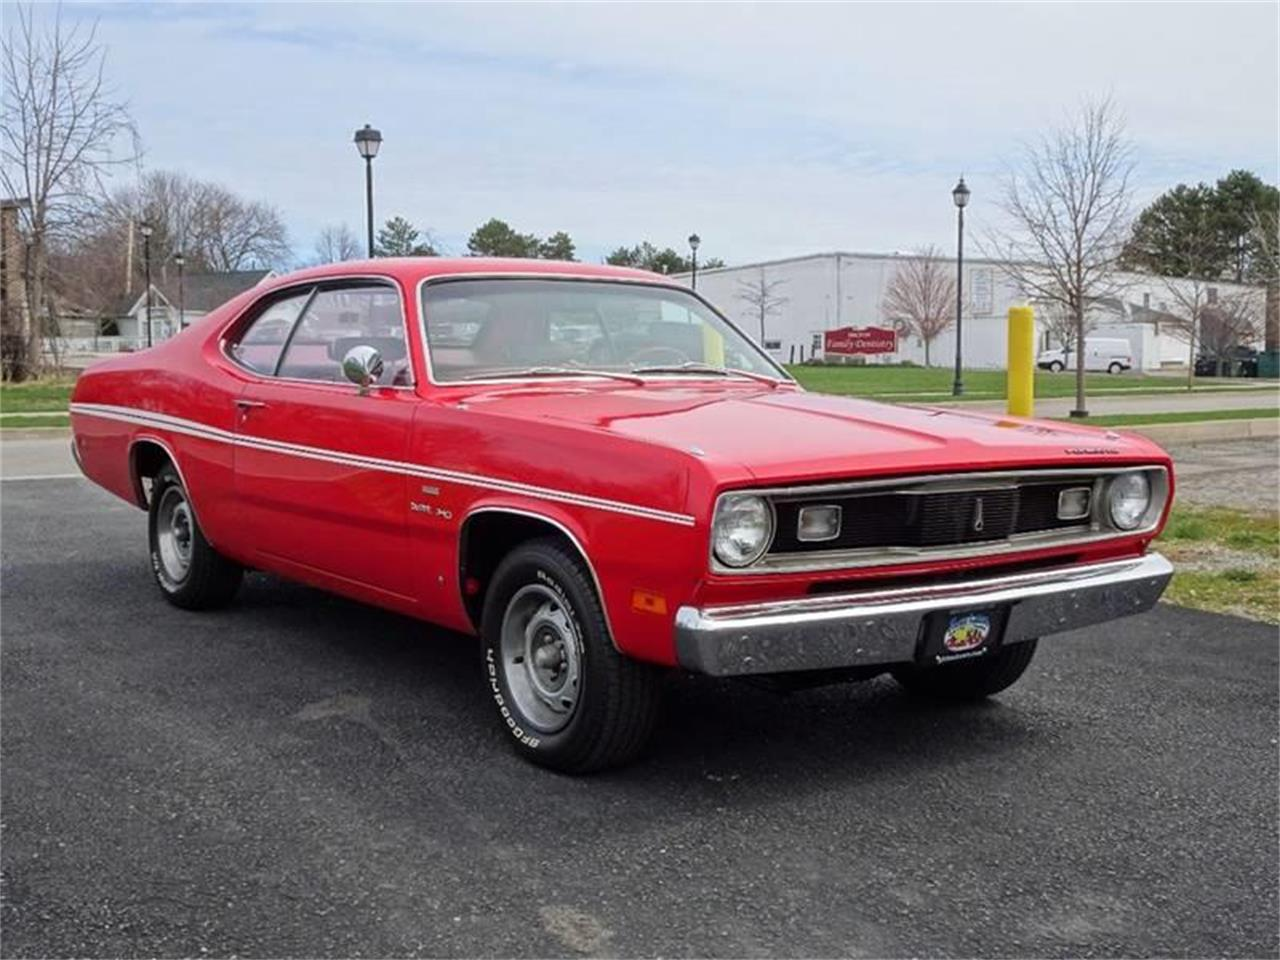 Large Picture of '70 Plymouth Duster located in Hilton New York - $34,850.00 - PX3M